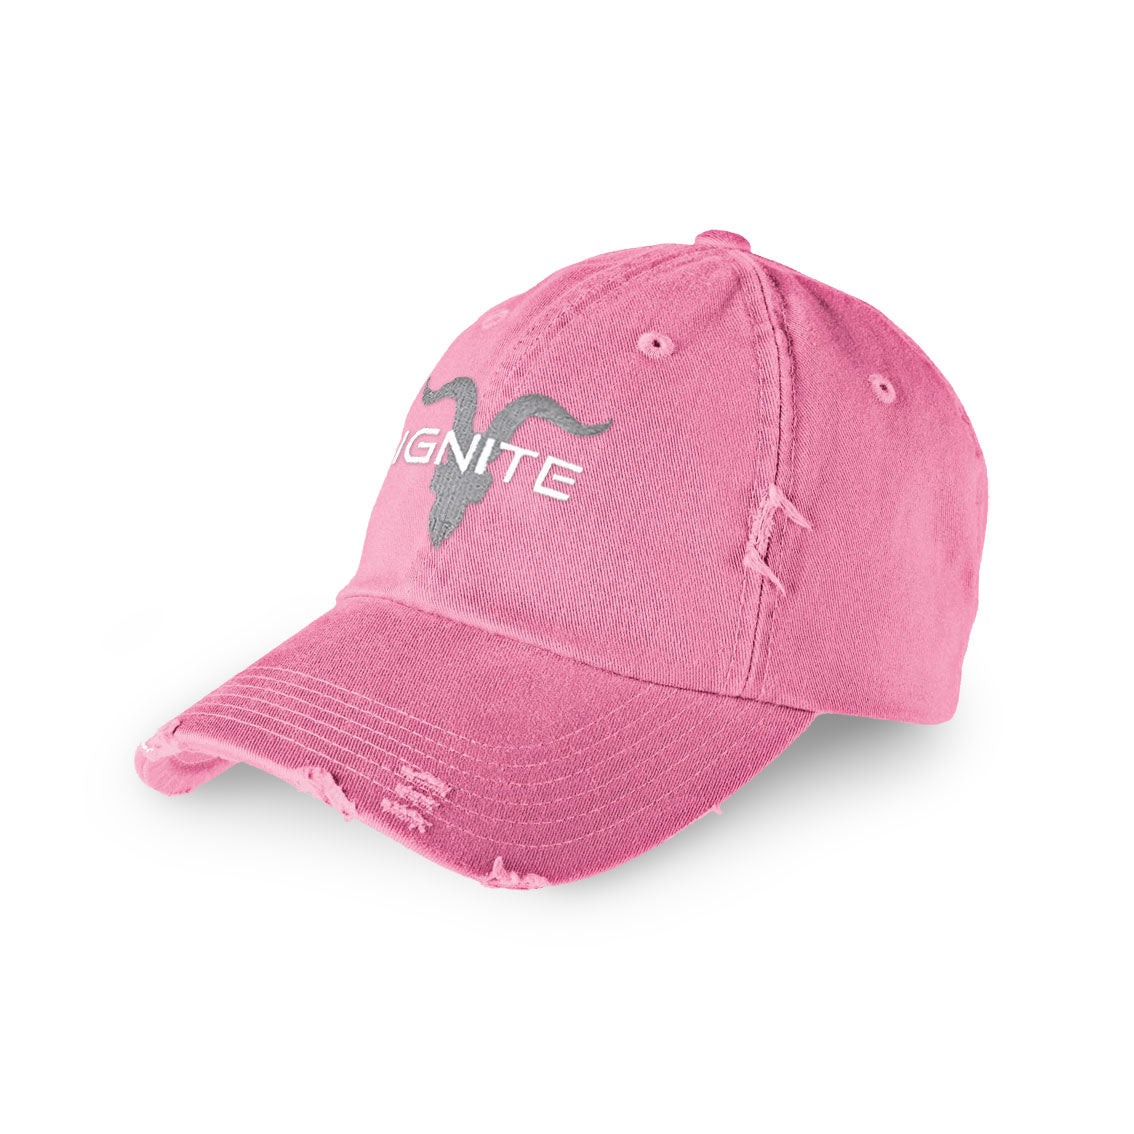 Distressed Dad Hat - Pink with Grey Logo